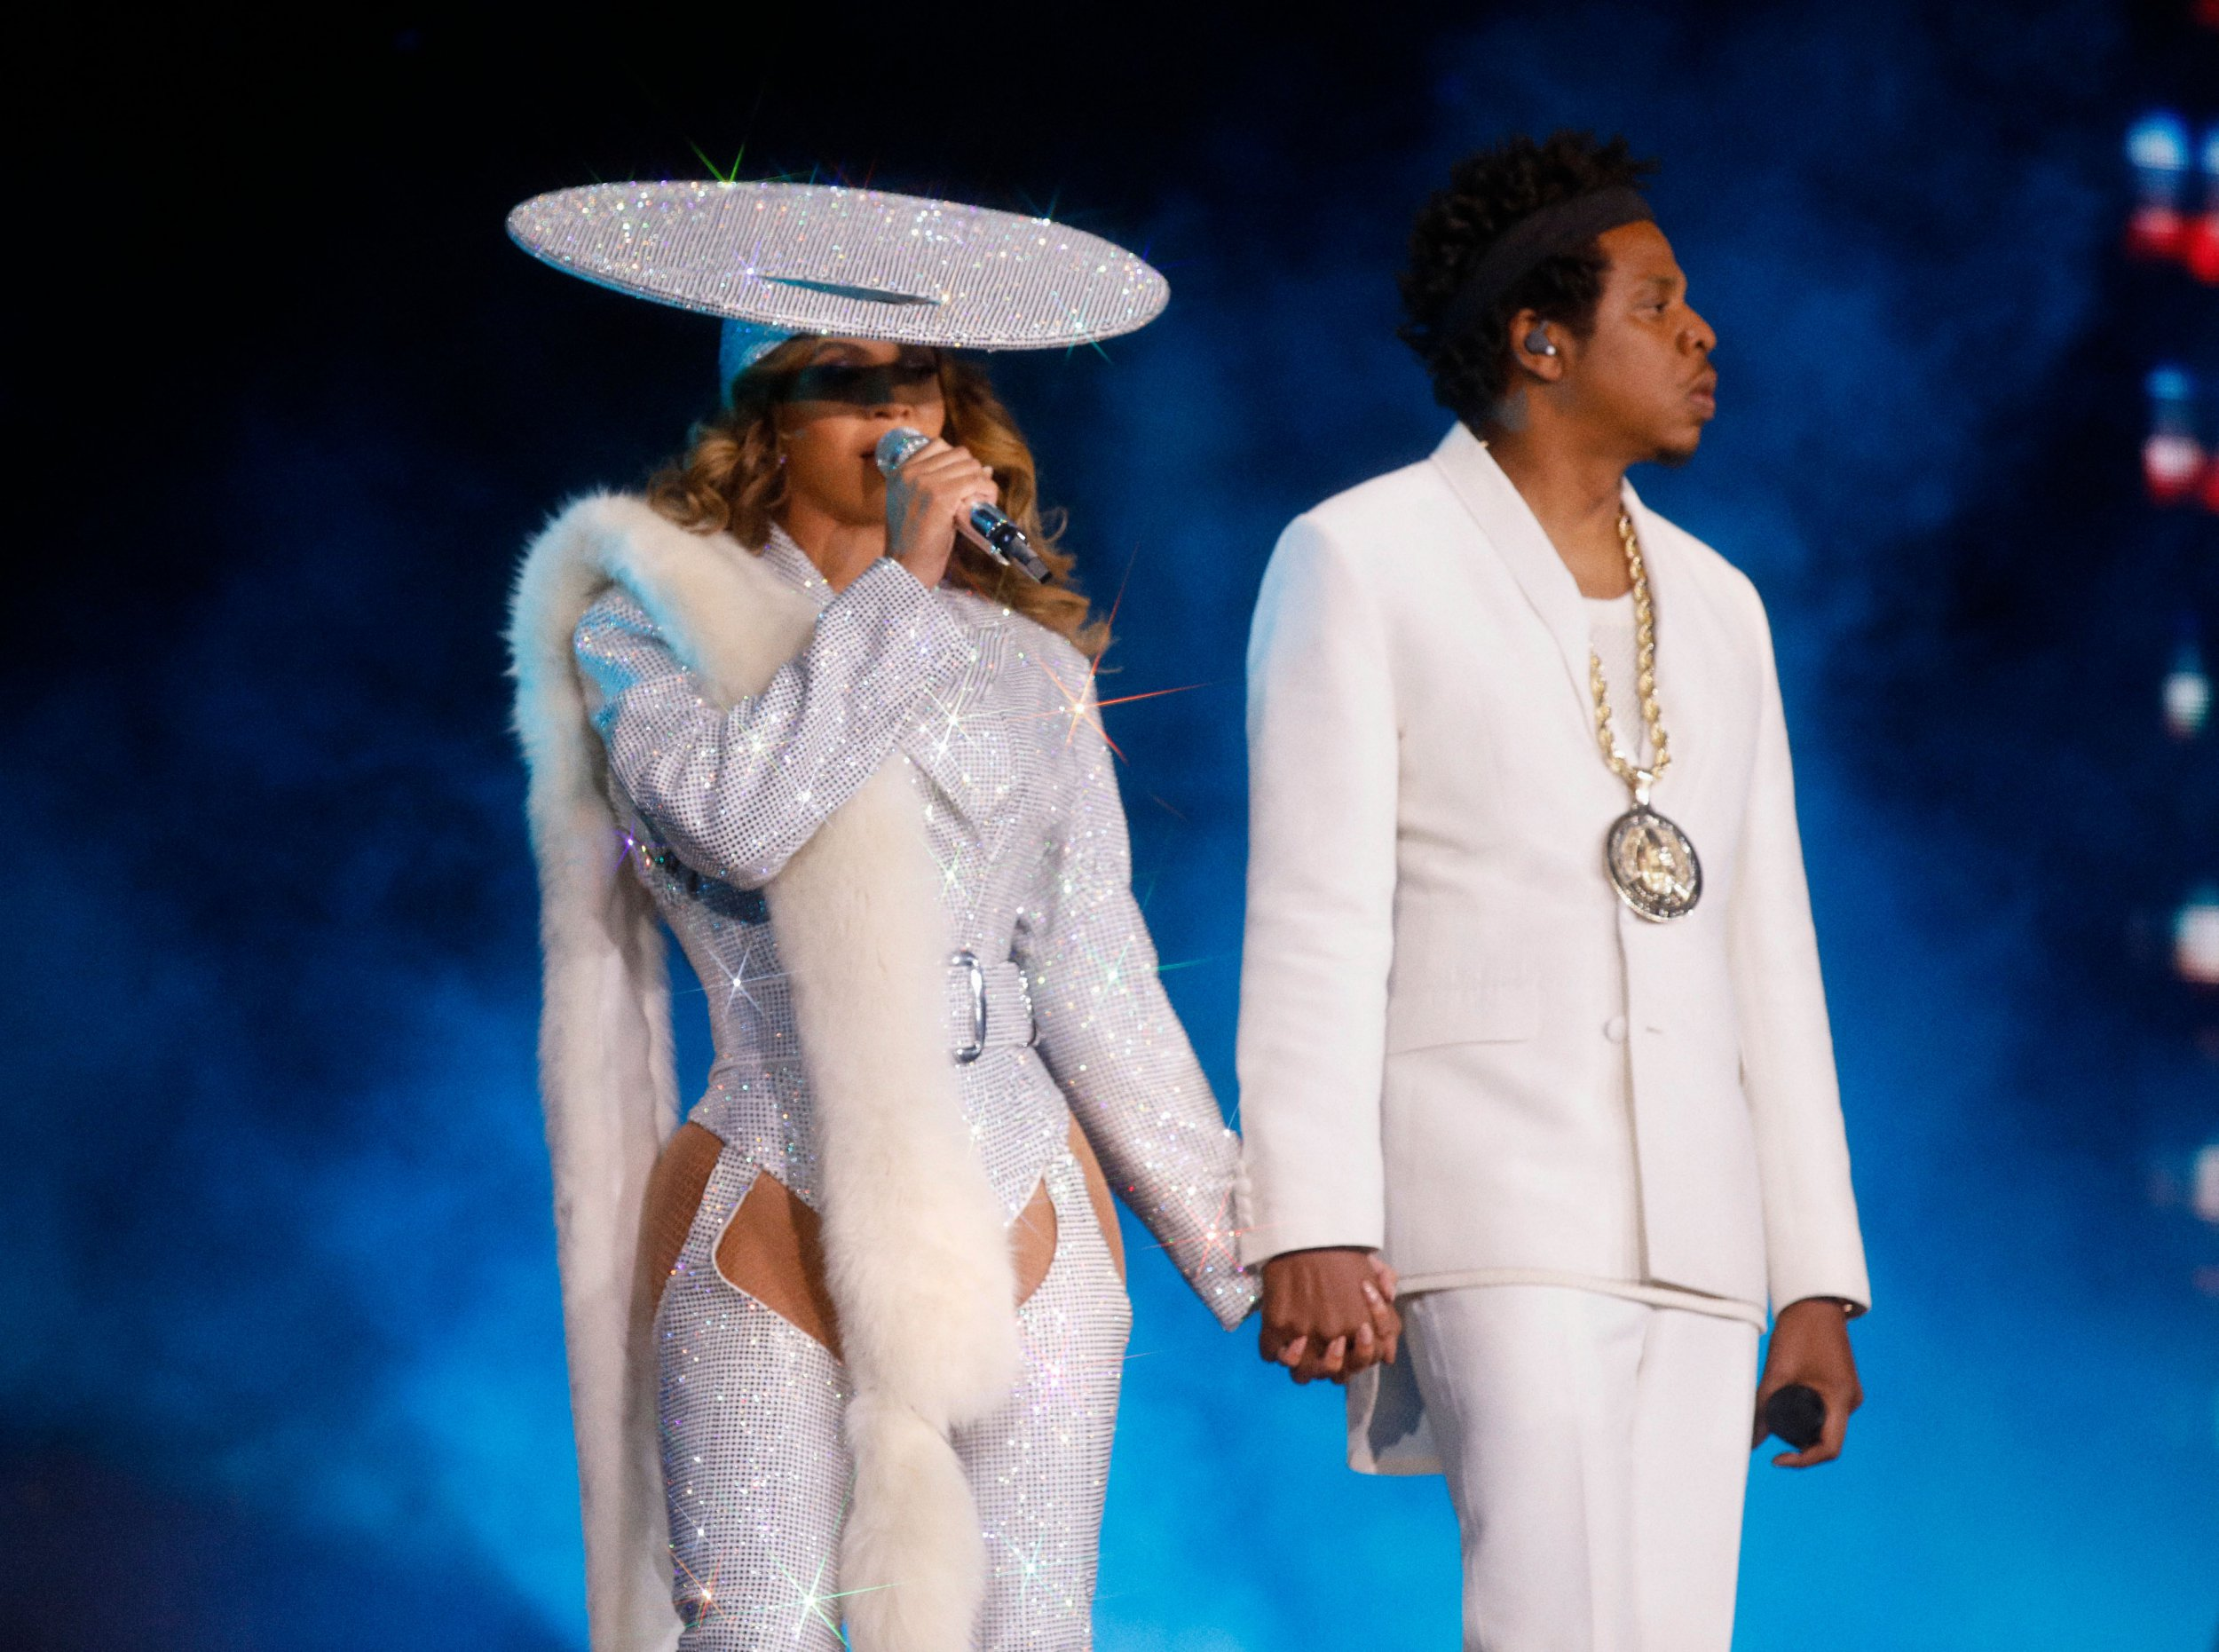 Beyonce and Jay-Z in concert, 'On The Run II Tour', Vancouver, Canada last year